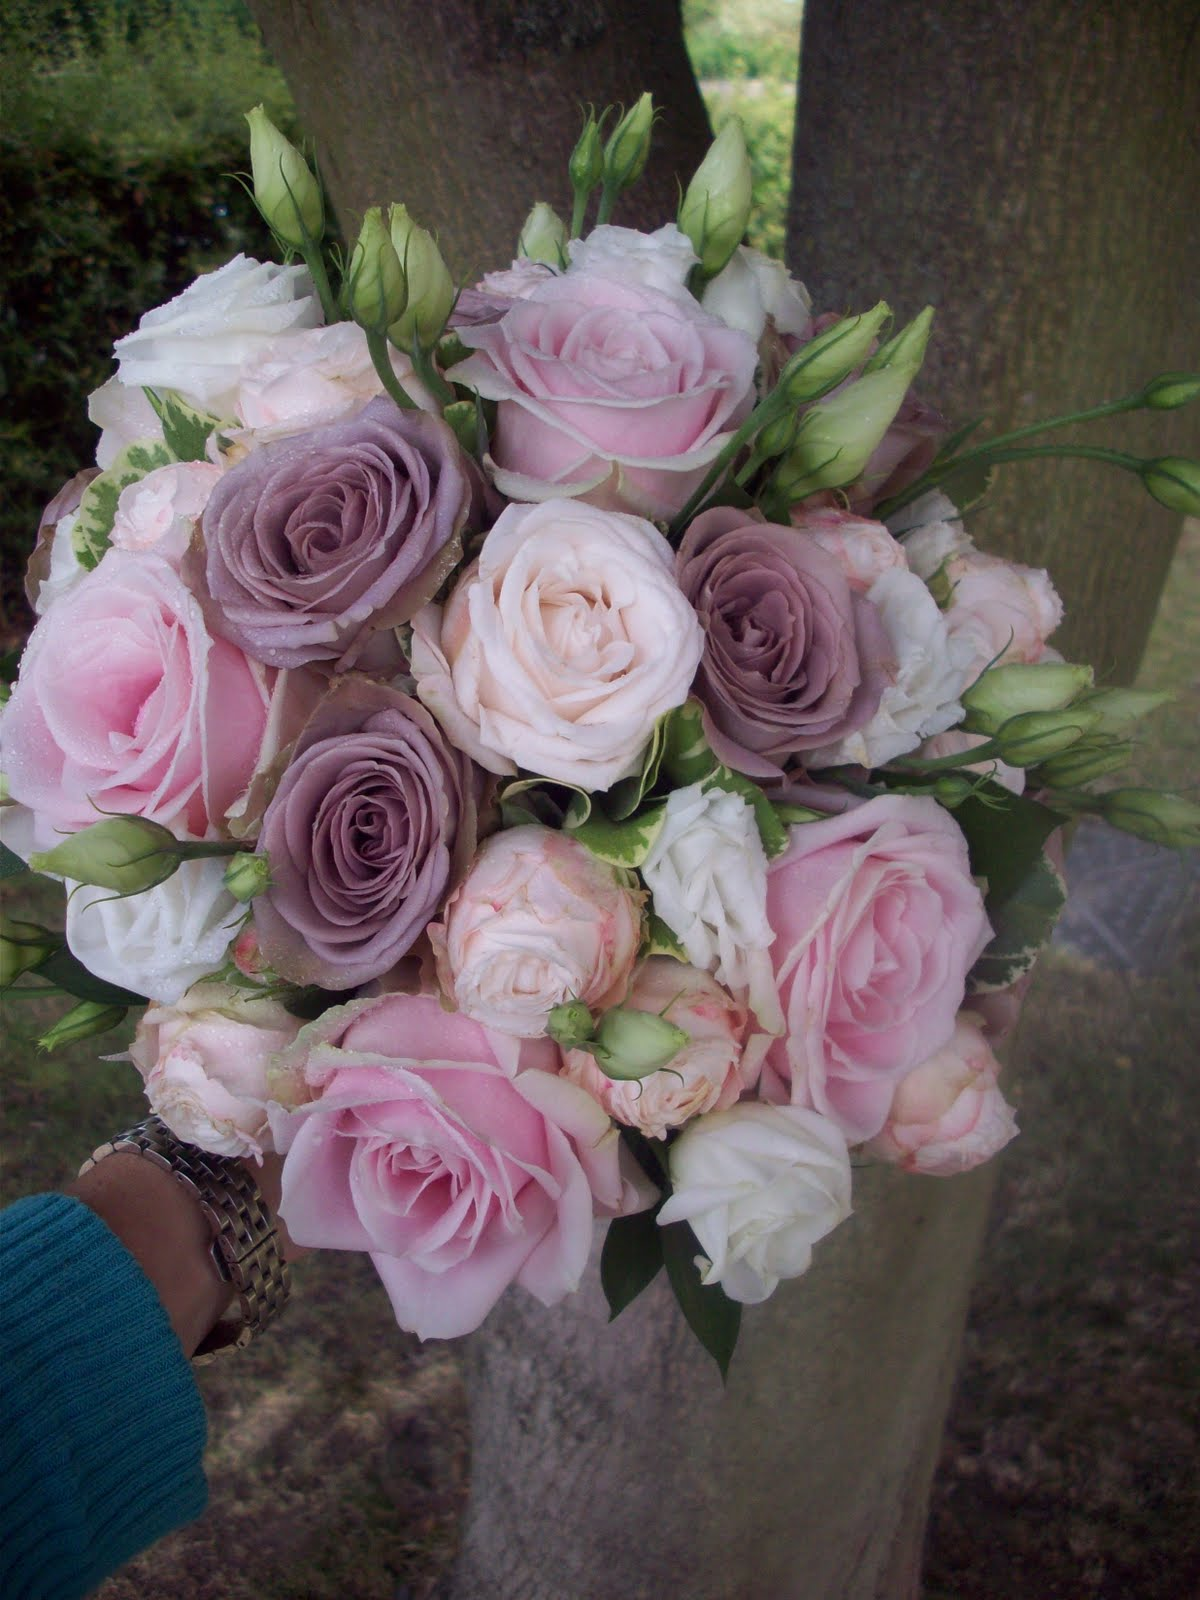 Florian designer florist wedding flower specialist mink and blush bouquet of mixed roses spray roses and lisianthus all softened with a varigated foliage the shades from nude blush taupe and mink was just lovley mightylinksfo